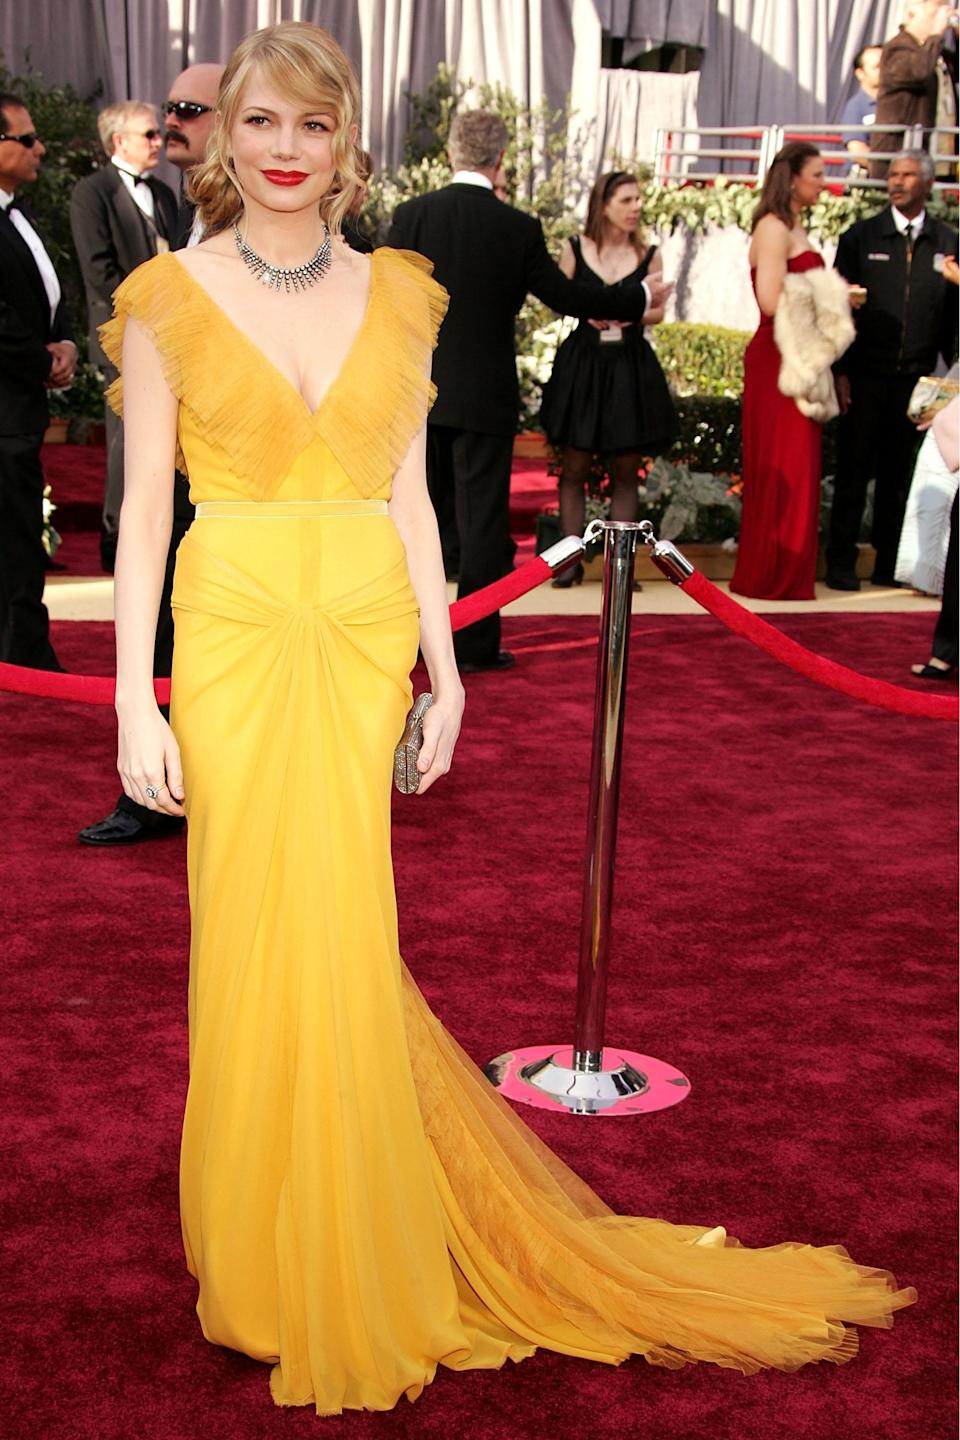 """<strong><h2>Michelle William, 2006</h2></strong><br>Accompanying her then-boyfriend, the late Heath Ledger, Michelle Williams was a shining ray of light in this yellow number by Vera Wang.<br><br><em>Michelle Williams in Vera Wang.</em><span class=""""copyright"""">Photo: Frazer Harrison/Getty Images. </span>"""